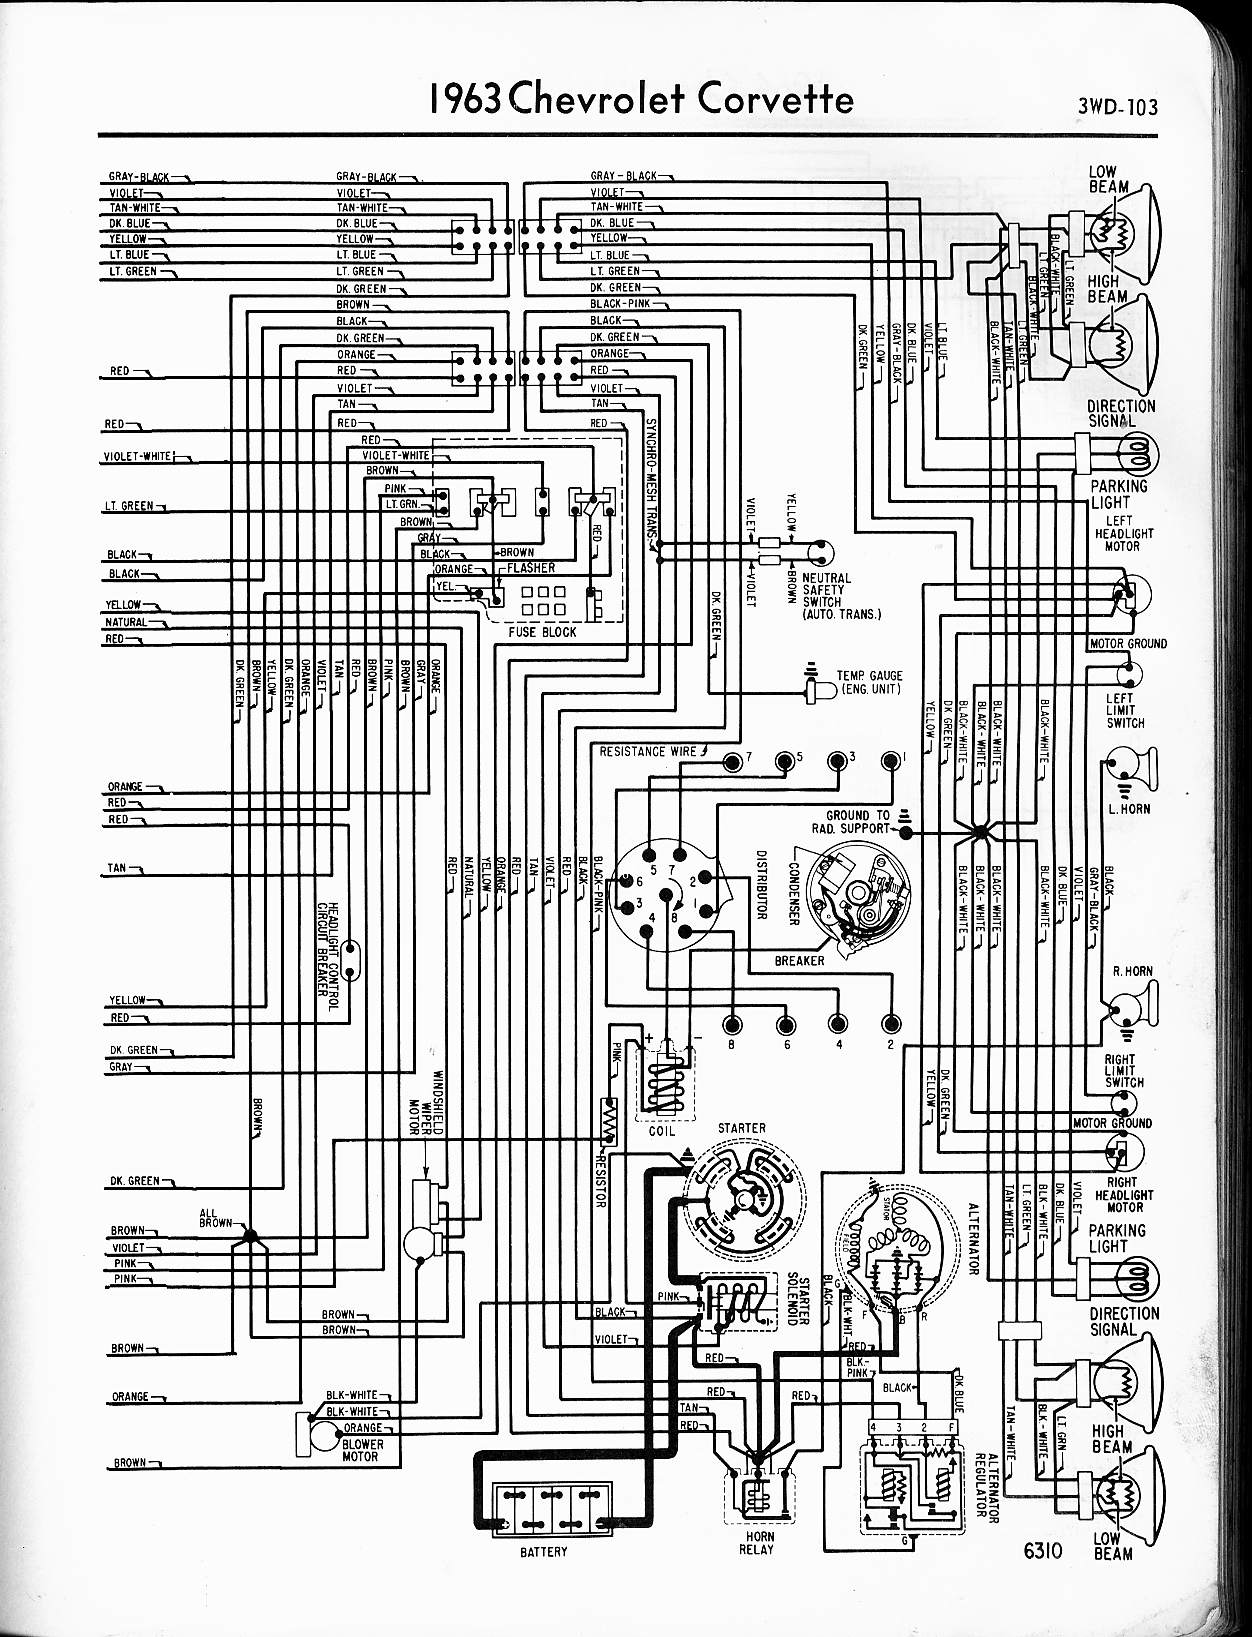 1986 corvette wiring diagram pdf online schematic diagram u2022 rh holyoak co 1978 Corvette Engine Diagram 1976 Corvette Starter Diagram